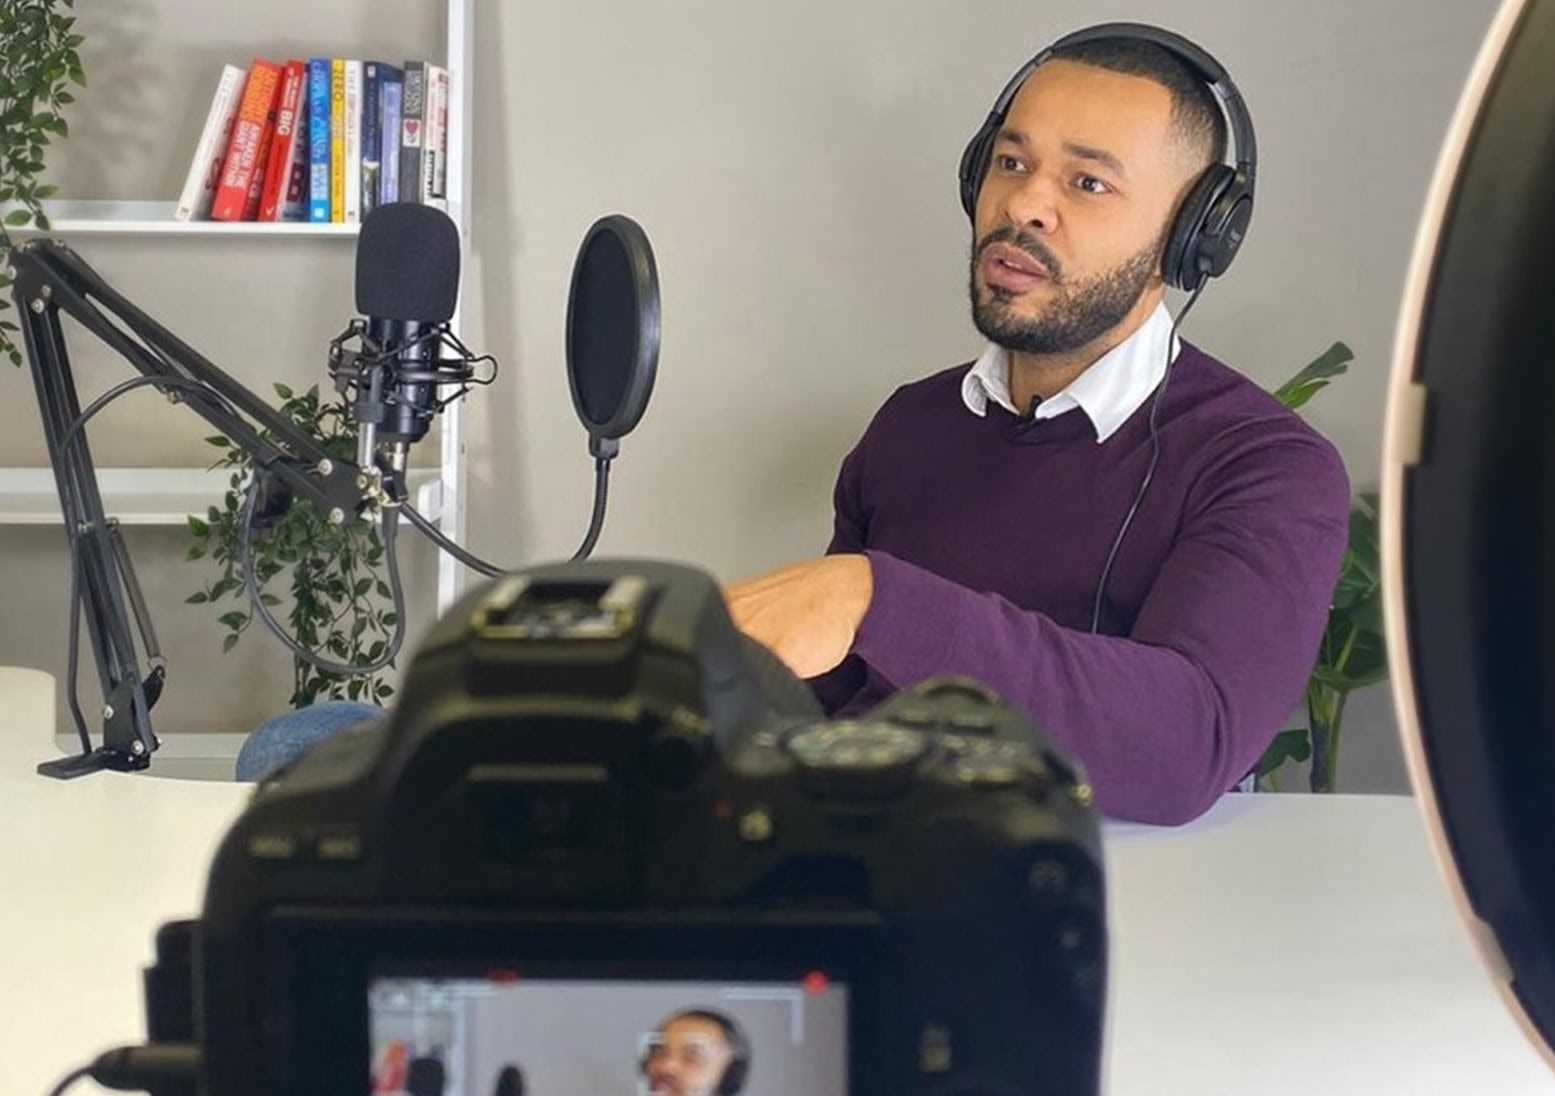 5 Top Podcasts for Entrepreneurs and Business Leaders